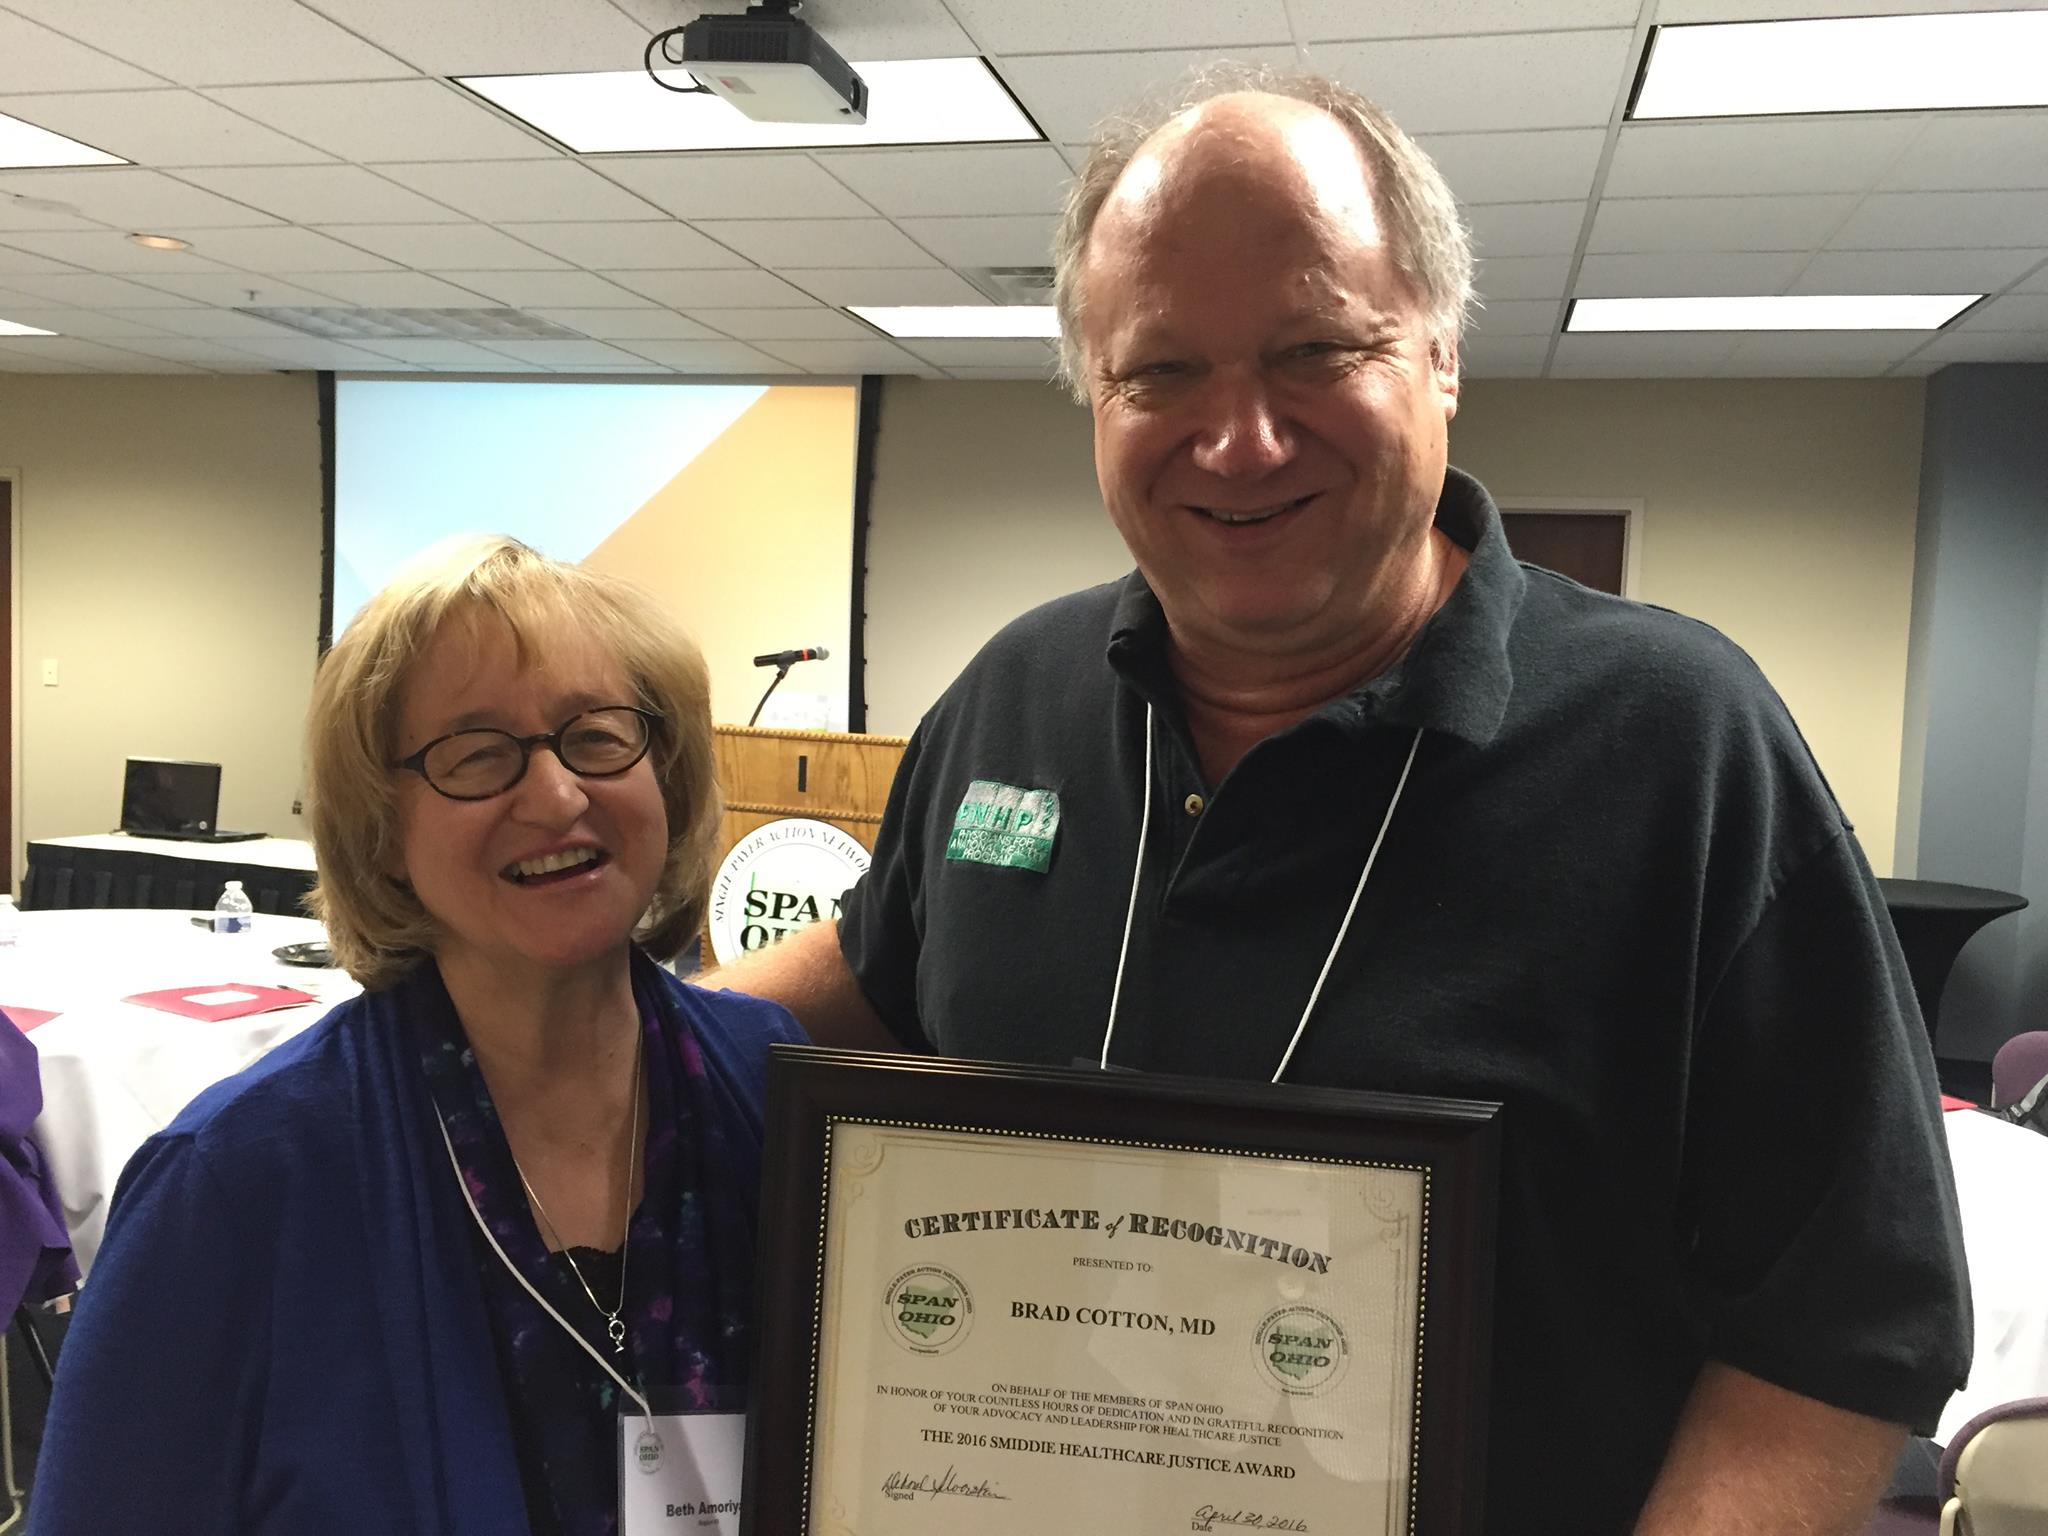 Dr. Brad Cotton receives Smiddie Award